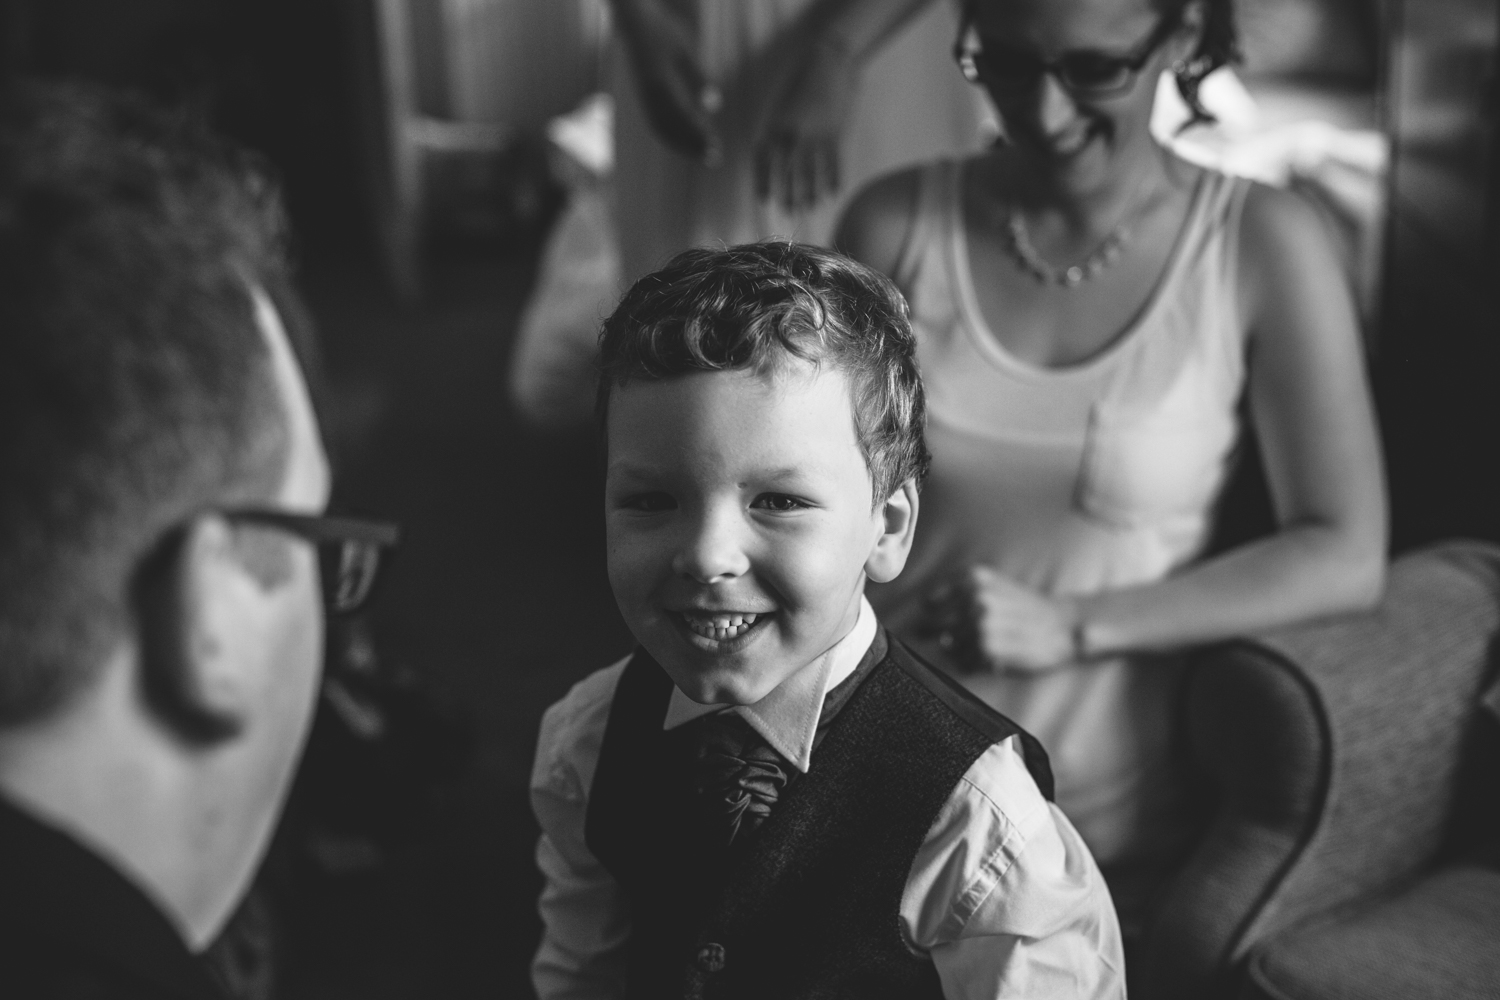 banchorylodgeweddingaberdeenshire (9 of 28).jpg